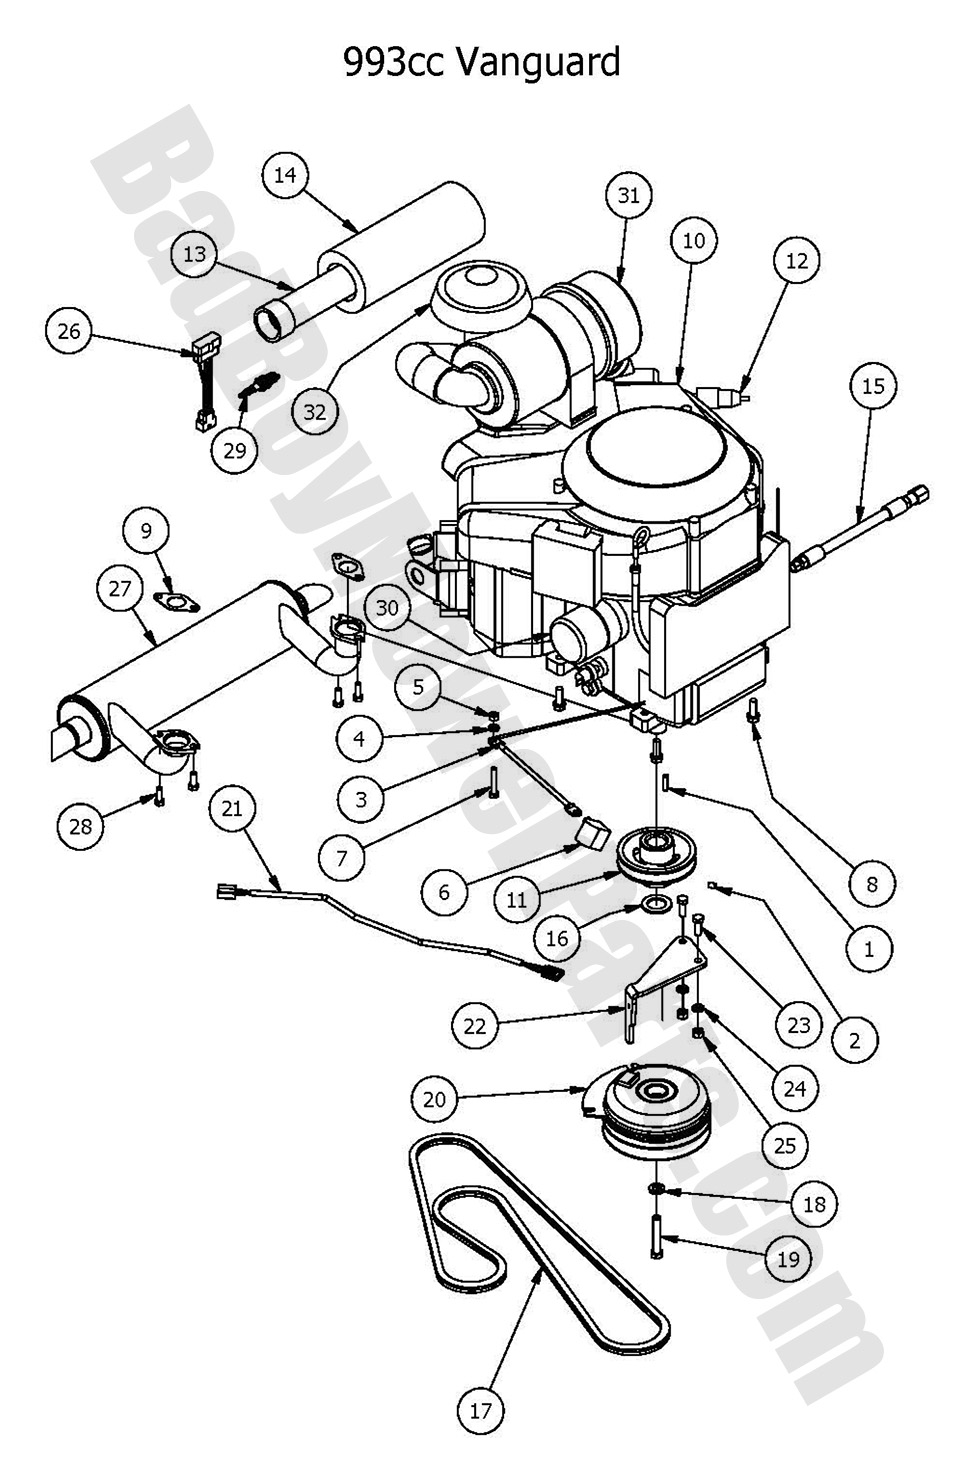 Bad boy mower parts 2016 outlaw xpengine vanguard 993cc diagram vanguard 20993cc bad boy mower